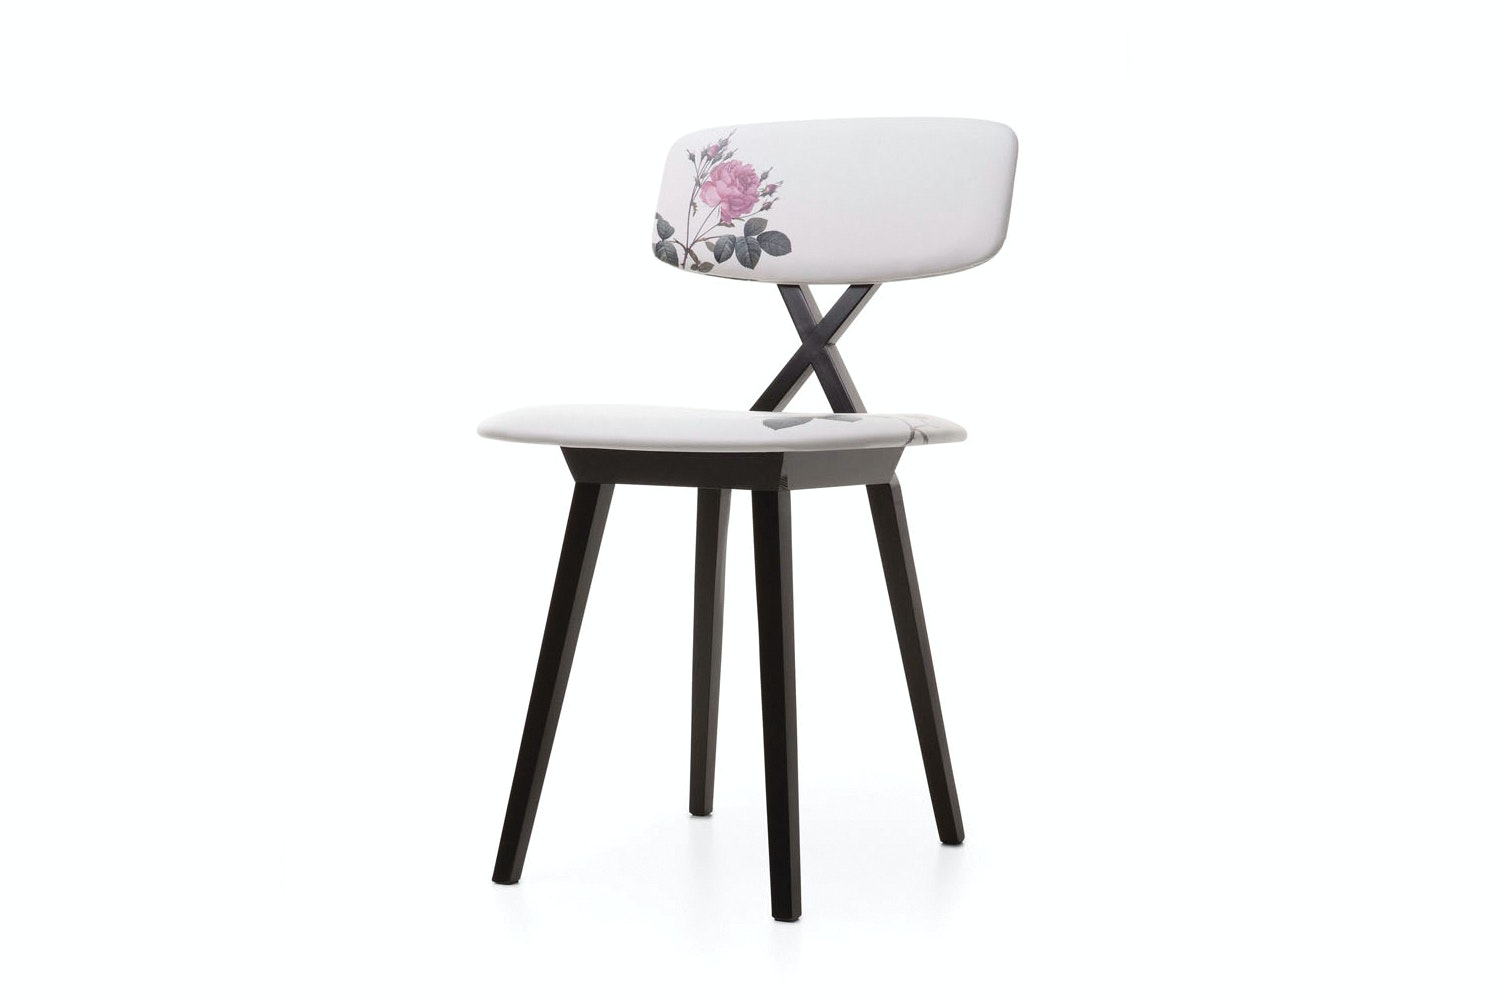 5 O'Clock Chair by Nika Zupanc for Moooi